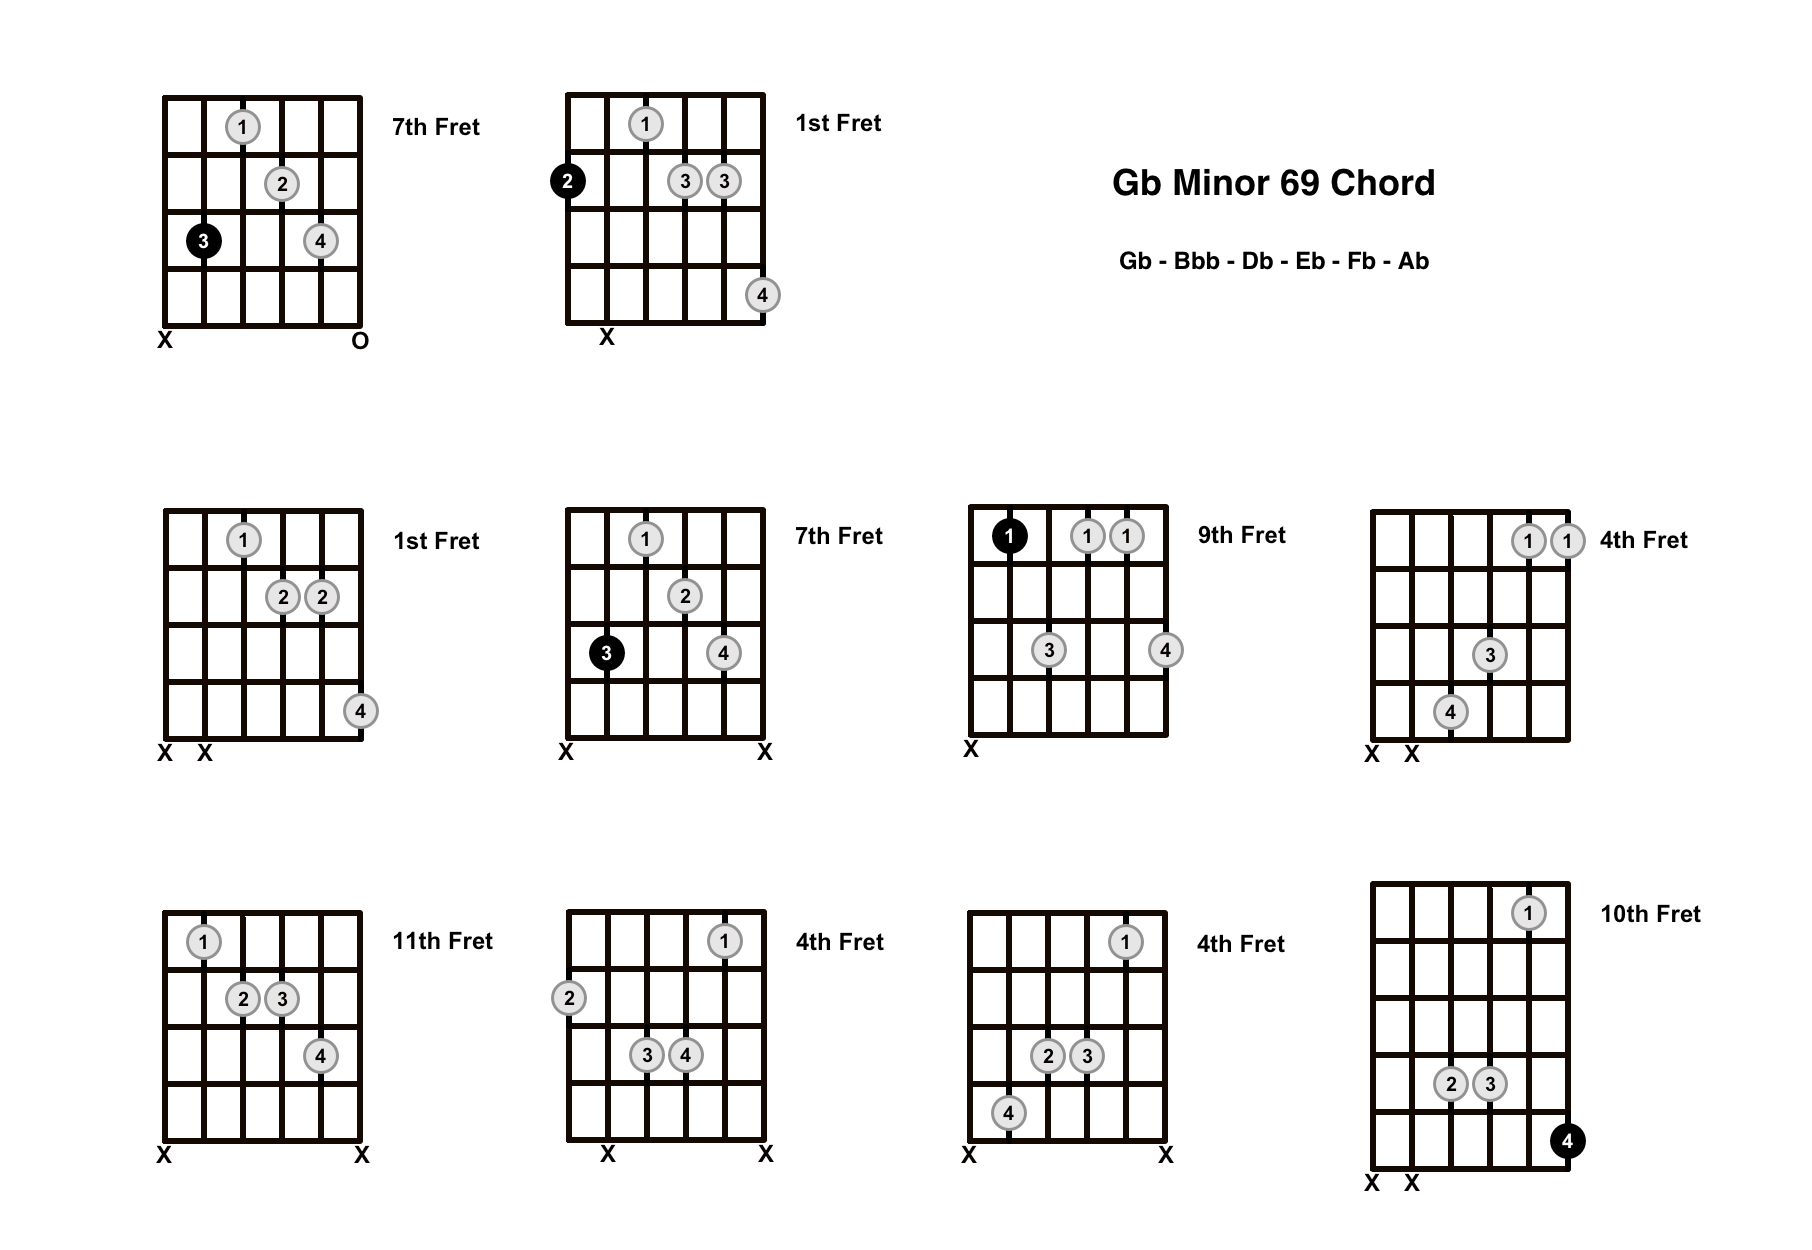 Gbm69 Chord On The Guitar (G Flat Minor 69) – Diagrams, Finger Positions and Theory